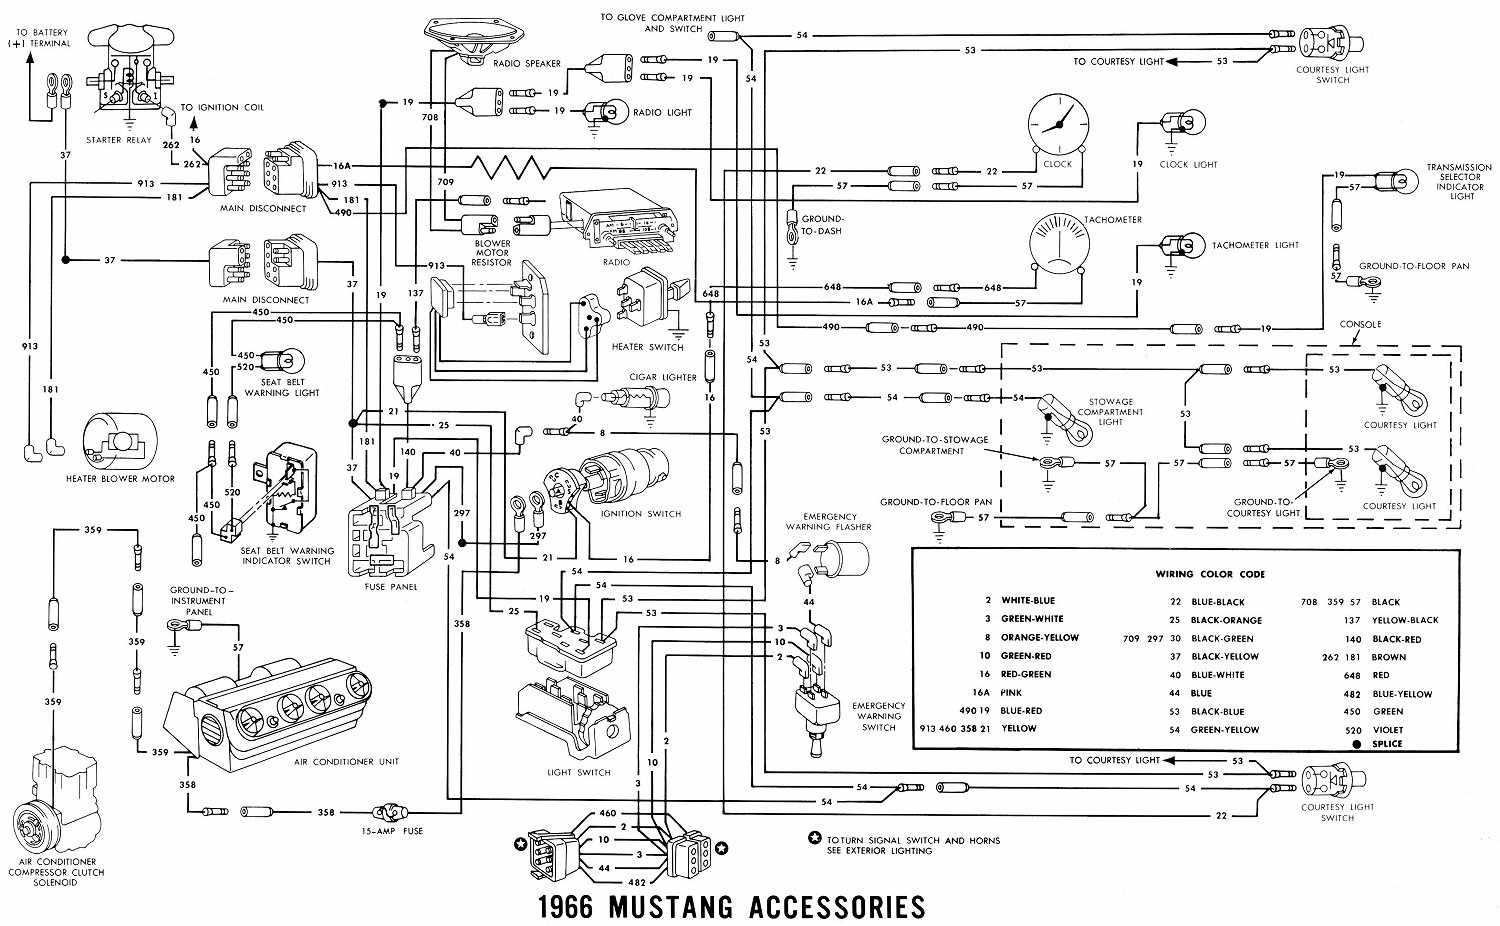 f150 trailer wiring diagram with 1966 Ford Mustang Accessories on Ford F150 F250 Why Cant I Get Into Or Out Of 4wd 360779 together with 1982 Gmc Truck Engine  partment besides Album page furthermore 1996 Ford Ranger Tail Light Wiring Diagram Wiring Diagrams in addition 2008 Ford Super Duty F 650 F 750 Passenger  partment Fuse Panel And Relay.